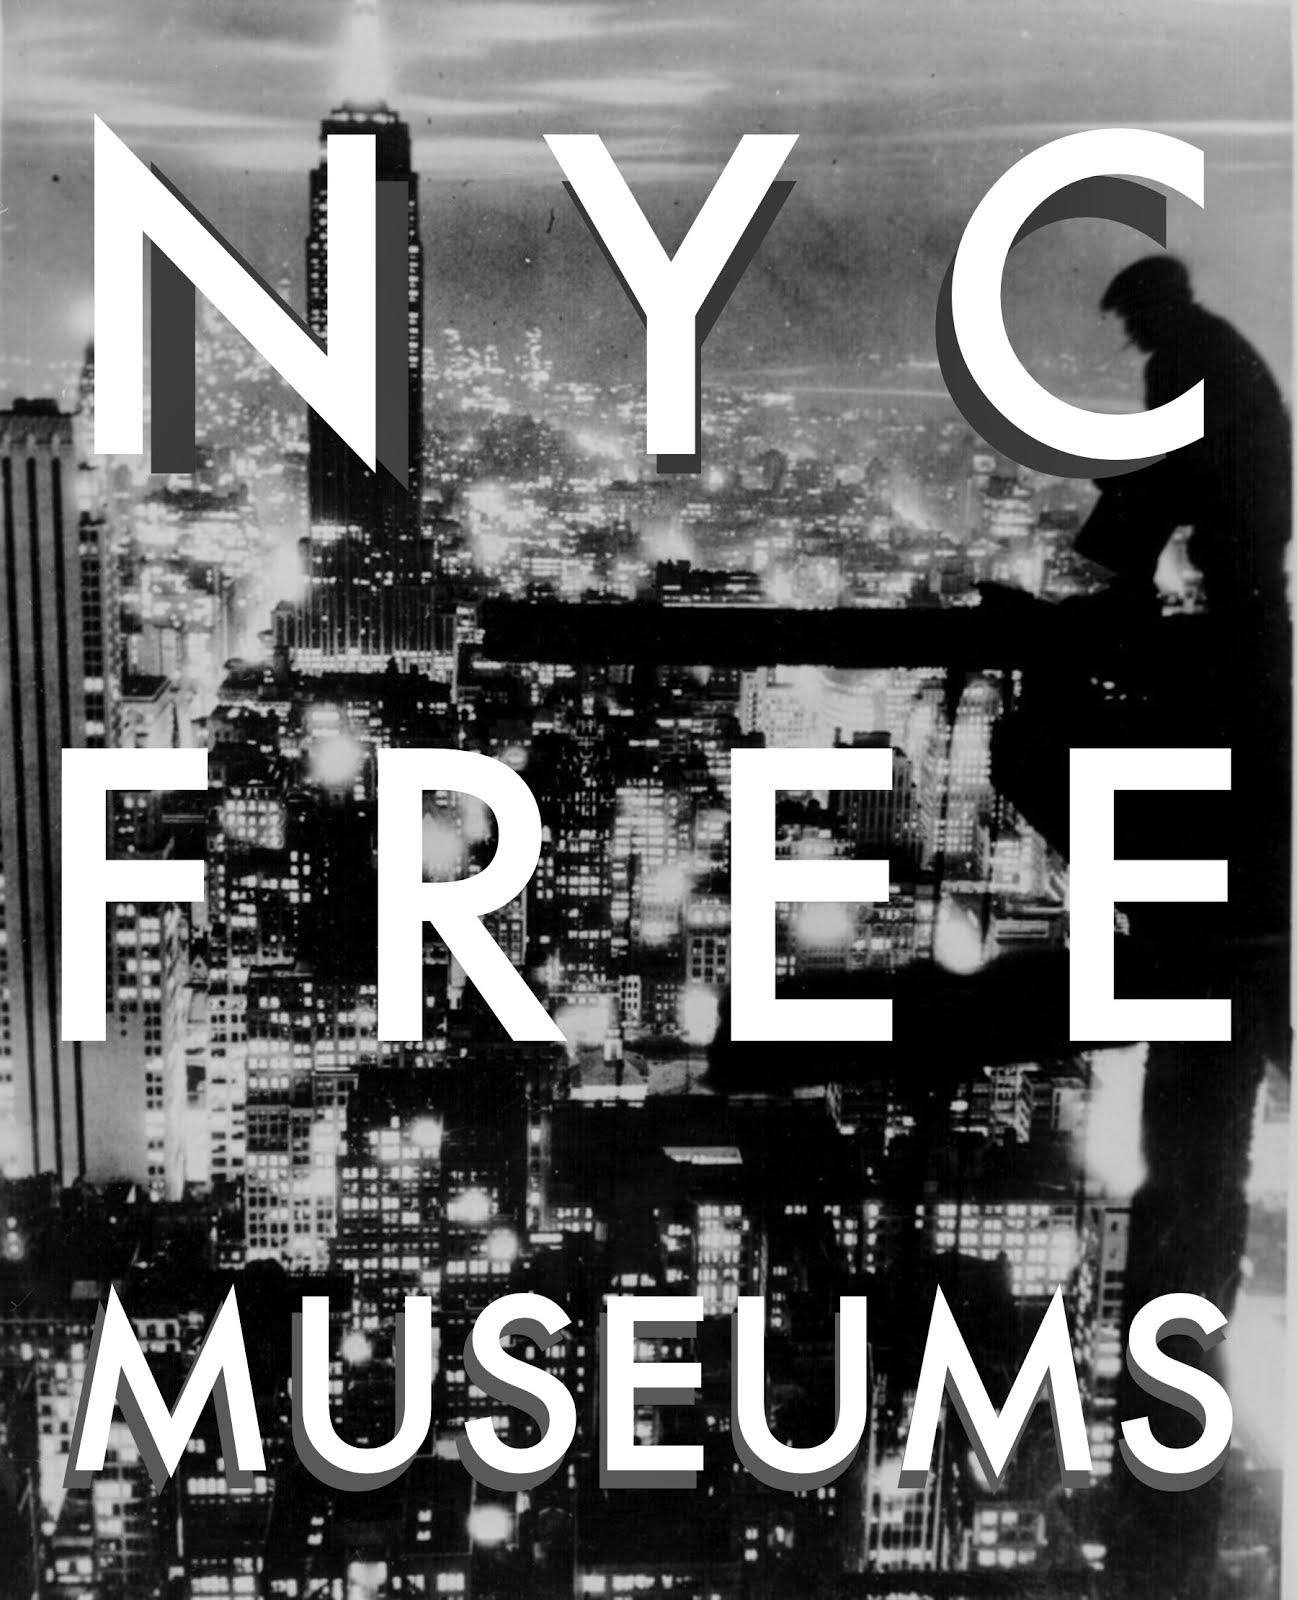 FREE MUSEUMS NYC